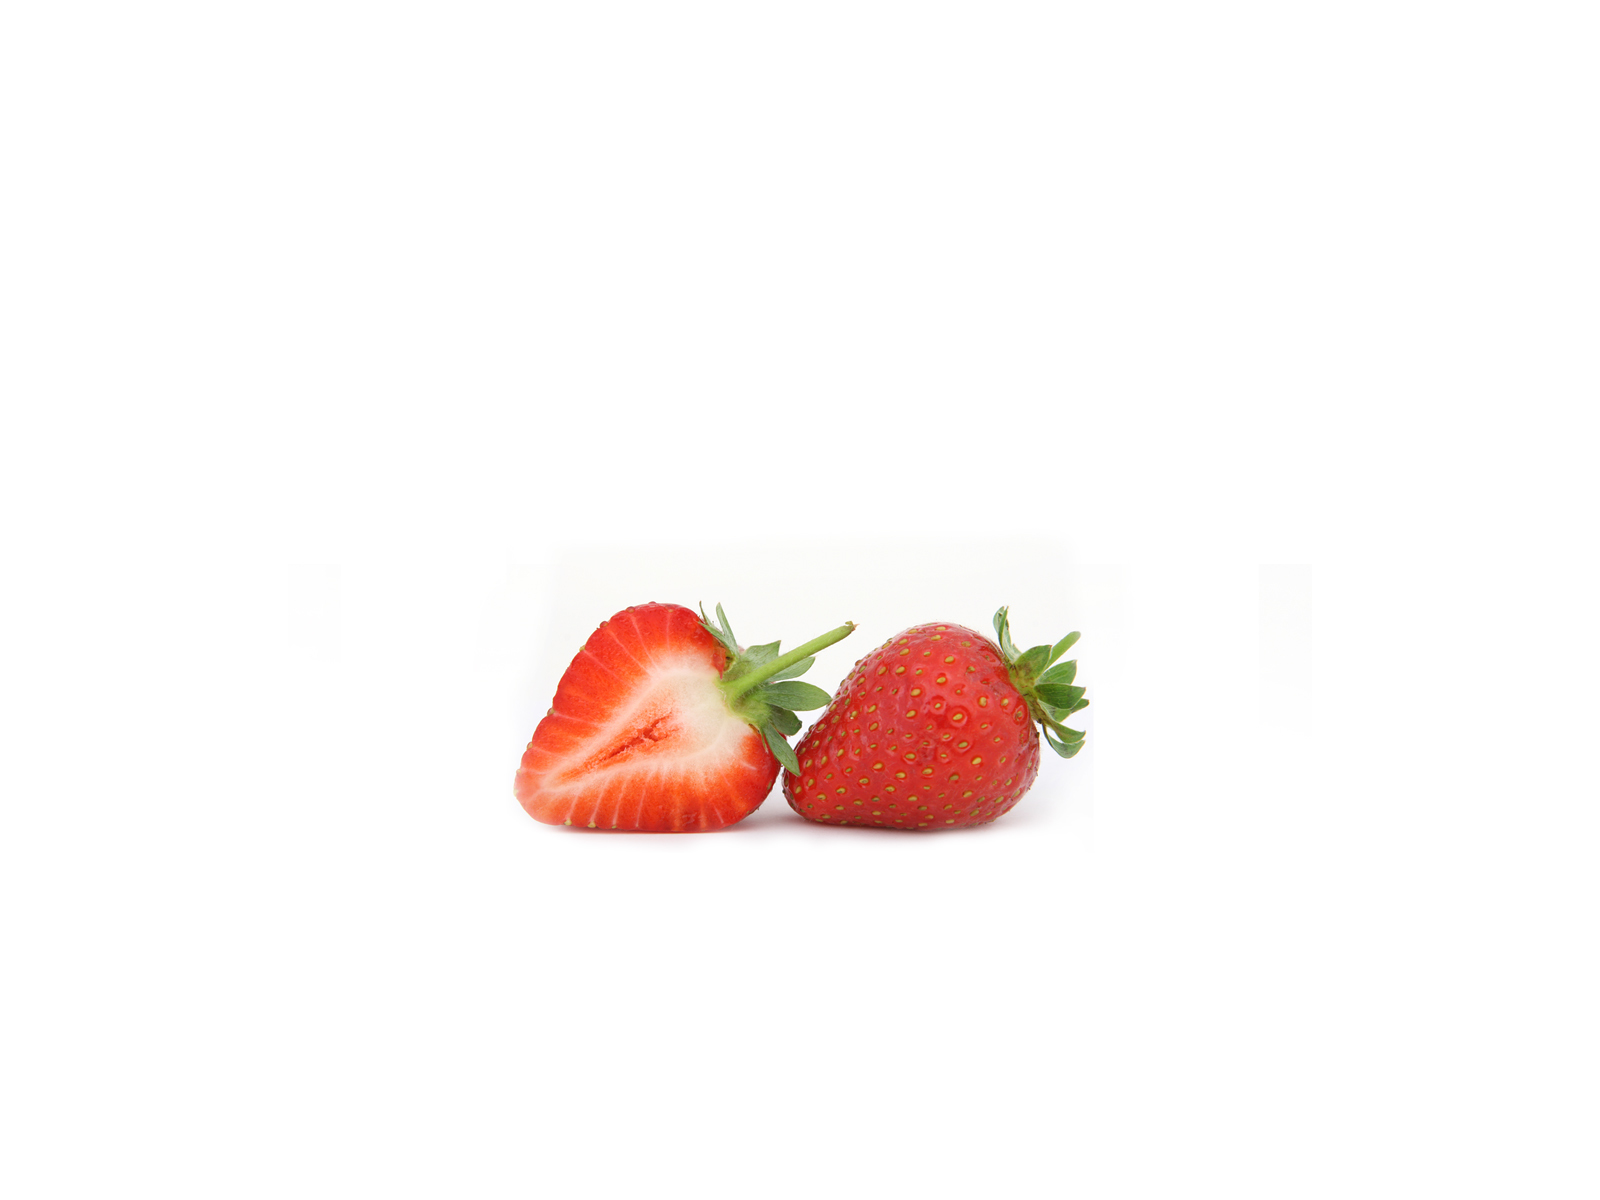 fruits food strawberries white